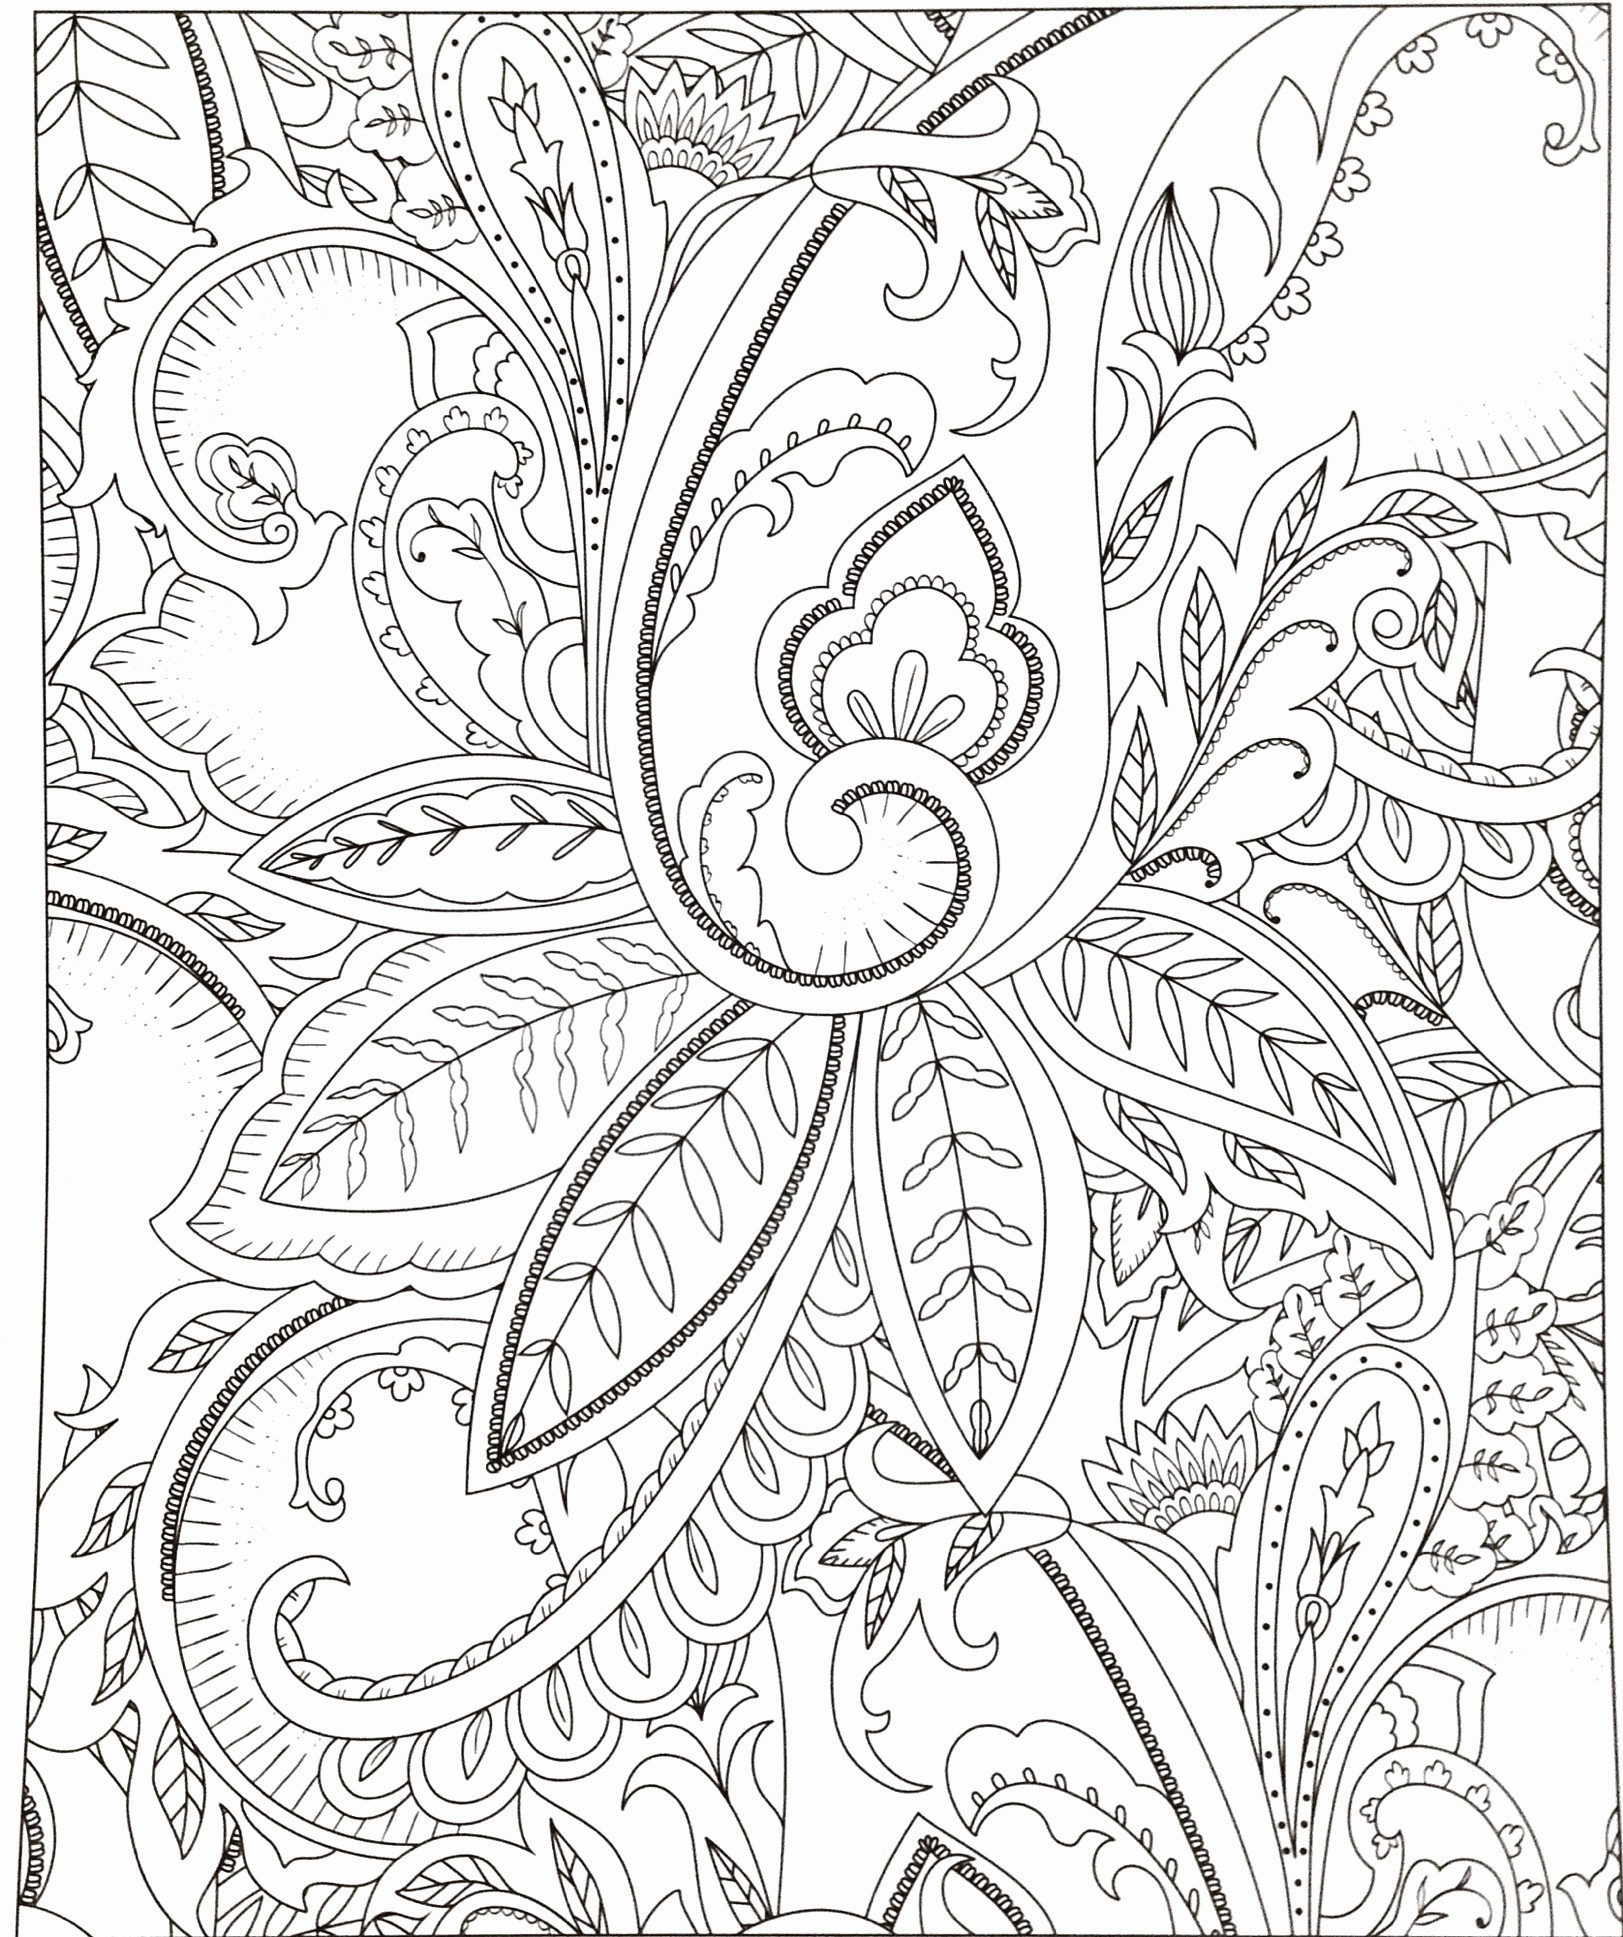 Renaissance Coloring Pages  Download 6n - To print for your project